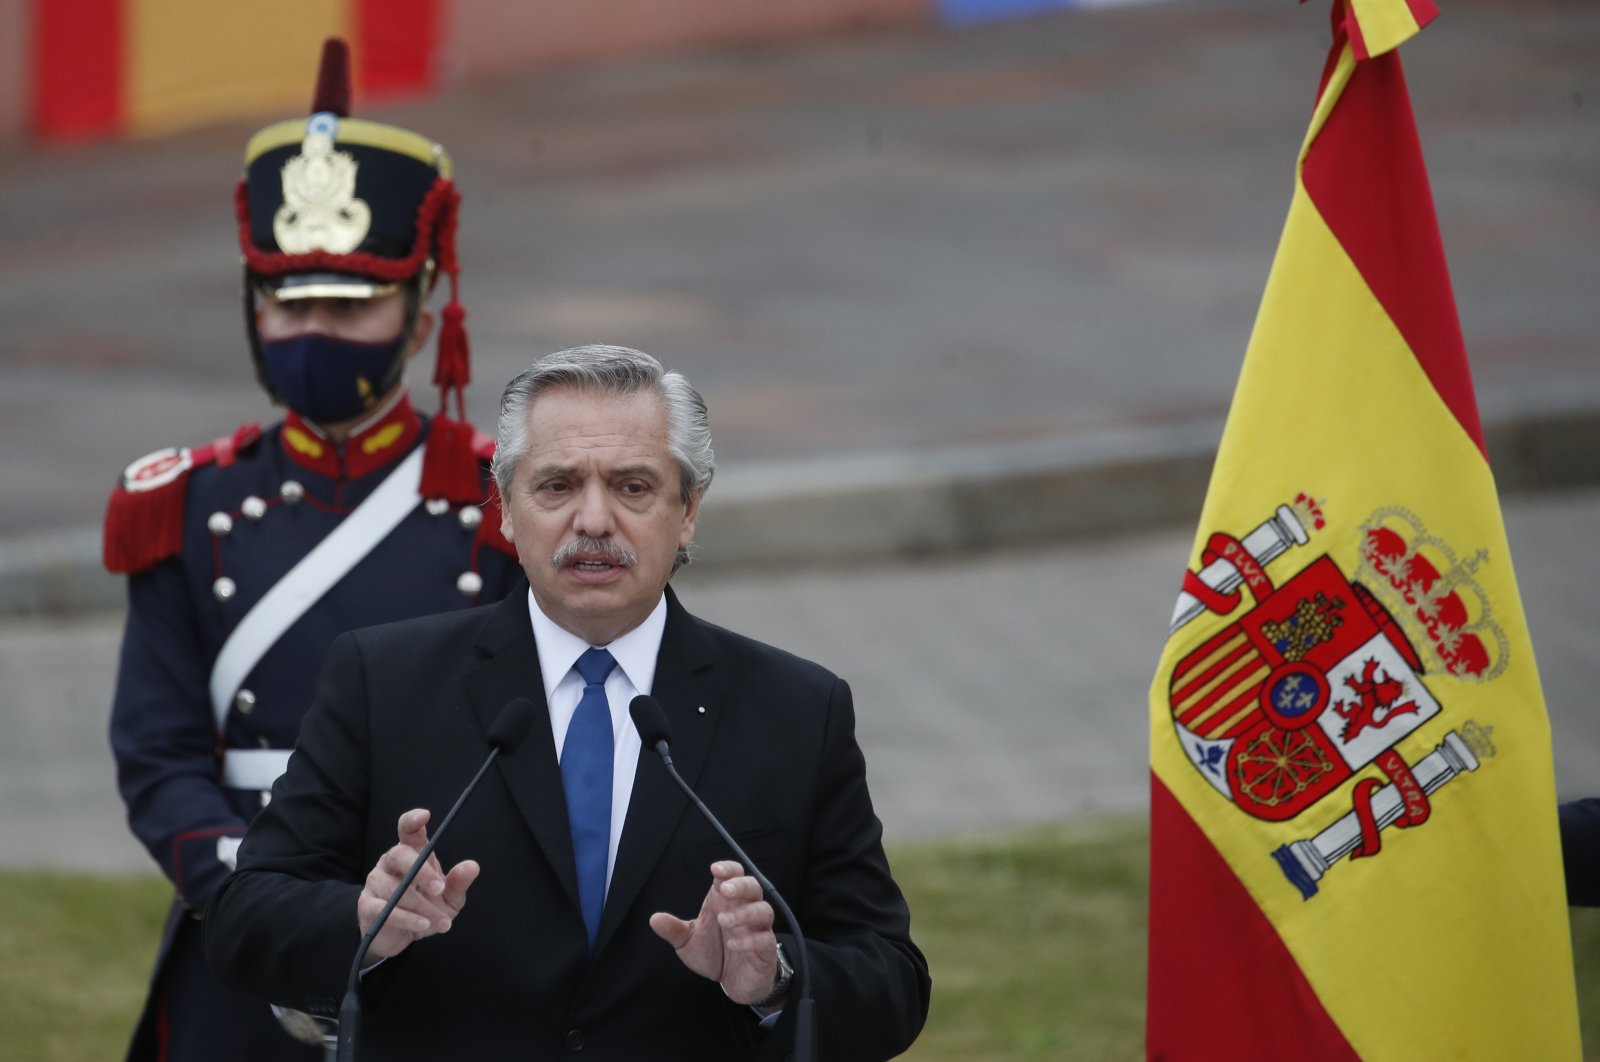 Argentina's President Alberto Fernandez speaks during a news conference, with Spain's Prime Minister Pedro Sanchez, outside La Casa Rosada during Sanchez's one day visit to Buenos Aires, Argentina, Wednesday, June 9, 2021. (AP Photo)